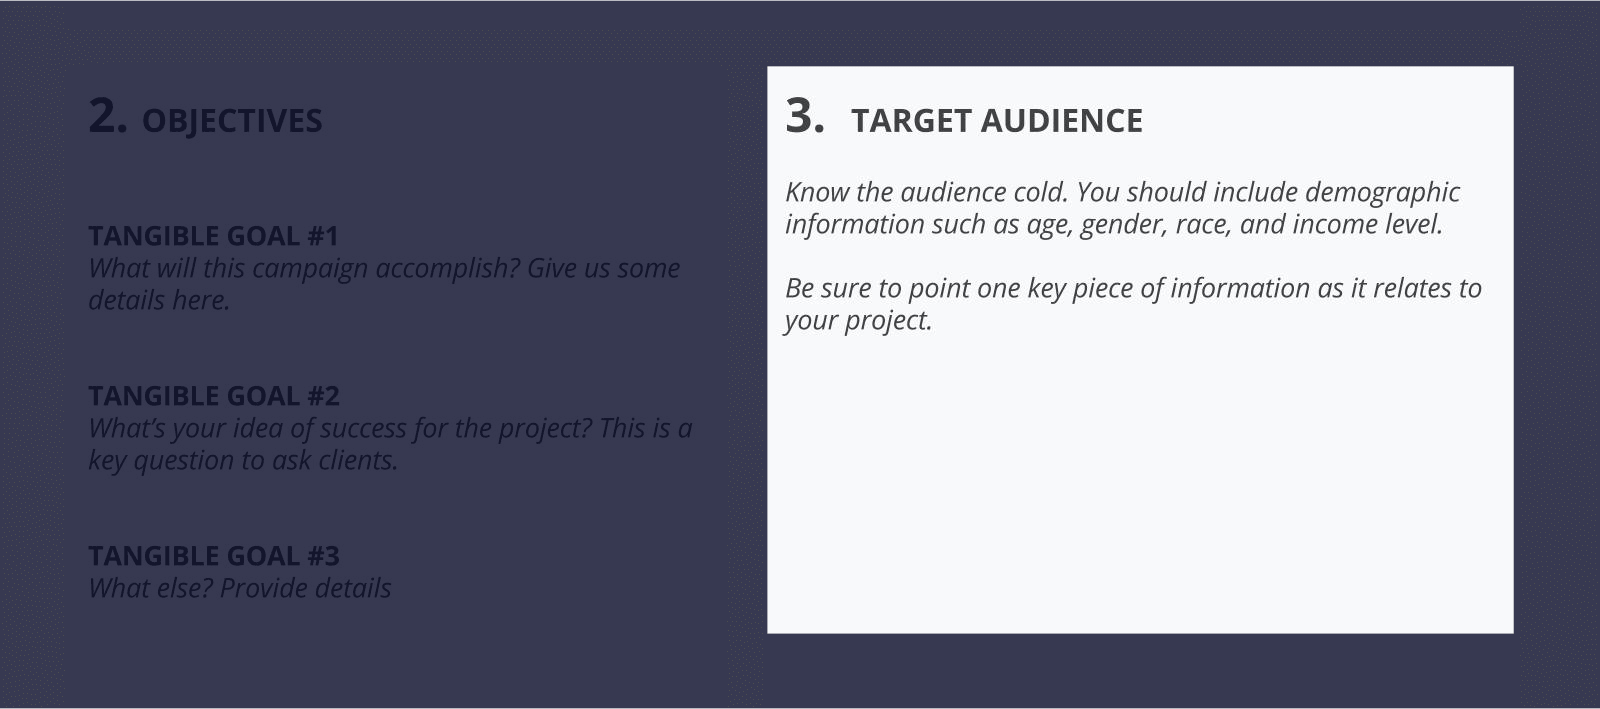 The Best Creative Brief Template For Video Agencies [Free Download] - Section 3 - Target audience